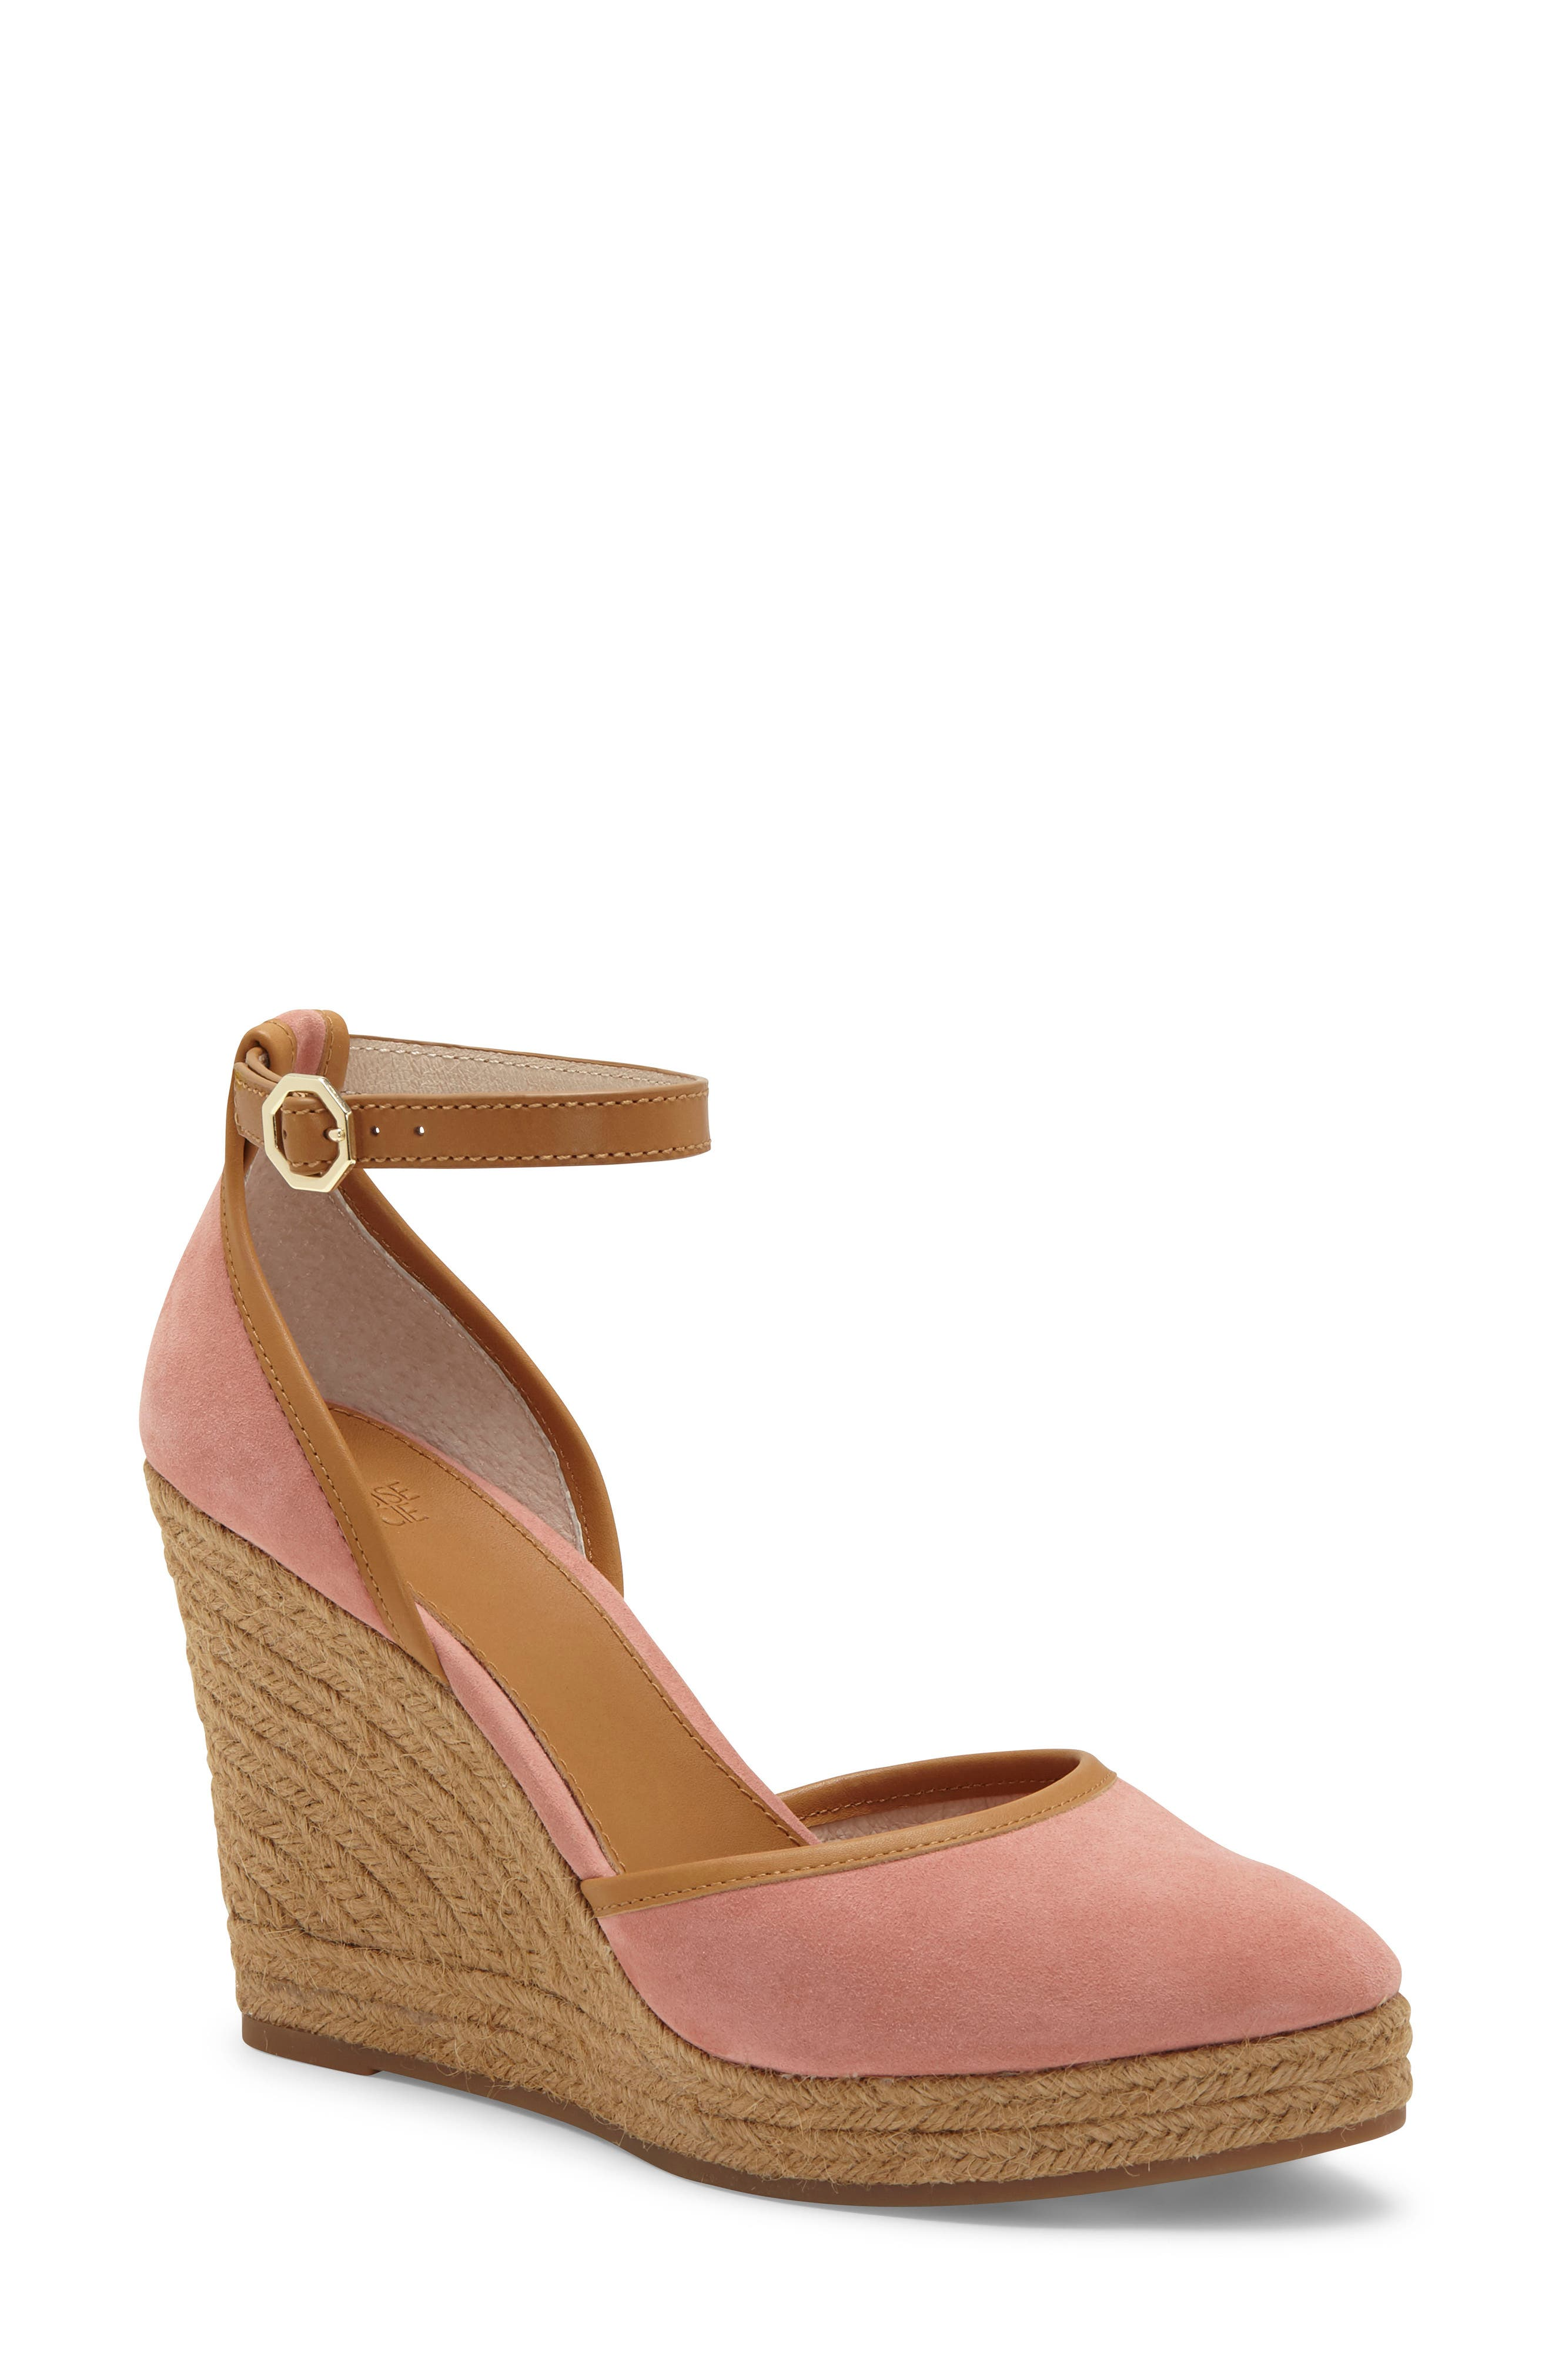 A lofty wedge espadrille with a leather ankle strap effortlessly juxtaposes earthy style and refined, casual appeal. Style Name: Louise Et Cie \\\'Palma\\\' Espadrille Wedge. Style Number: 986868. Available in stores.